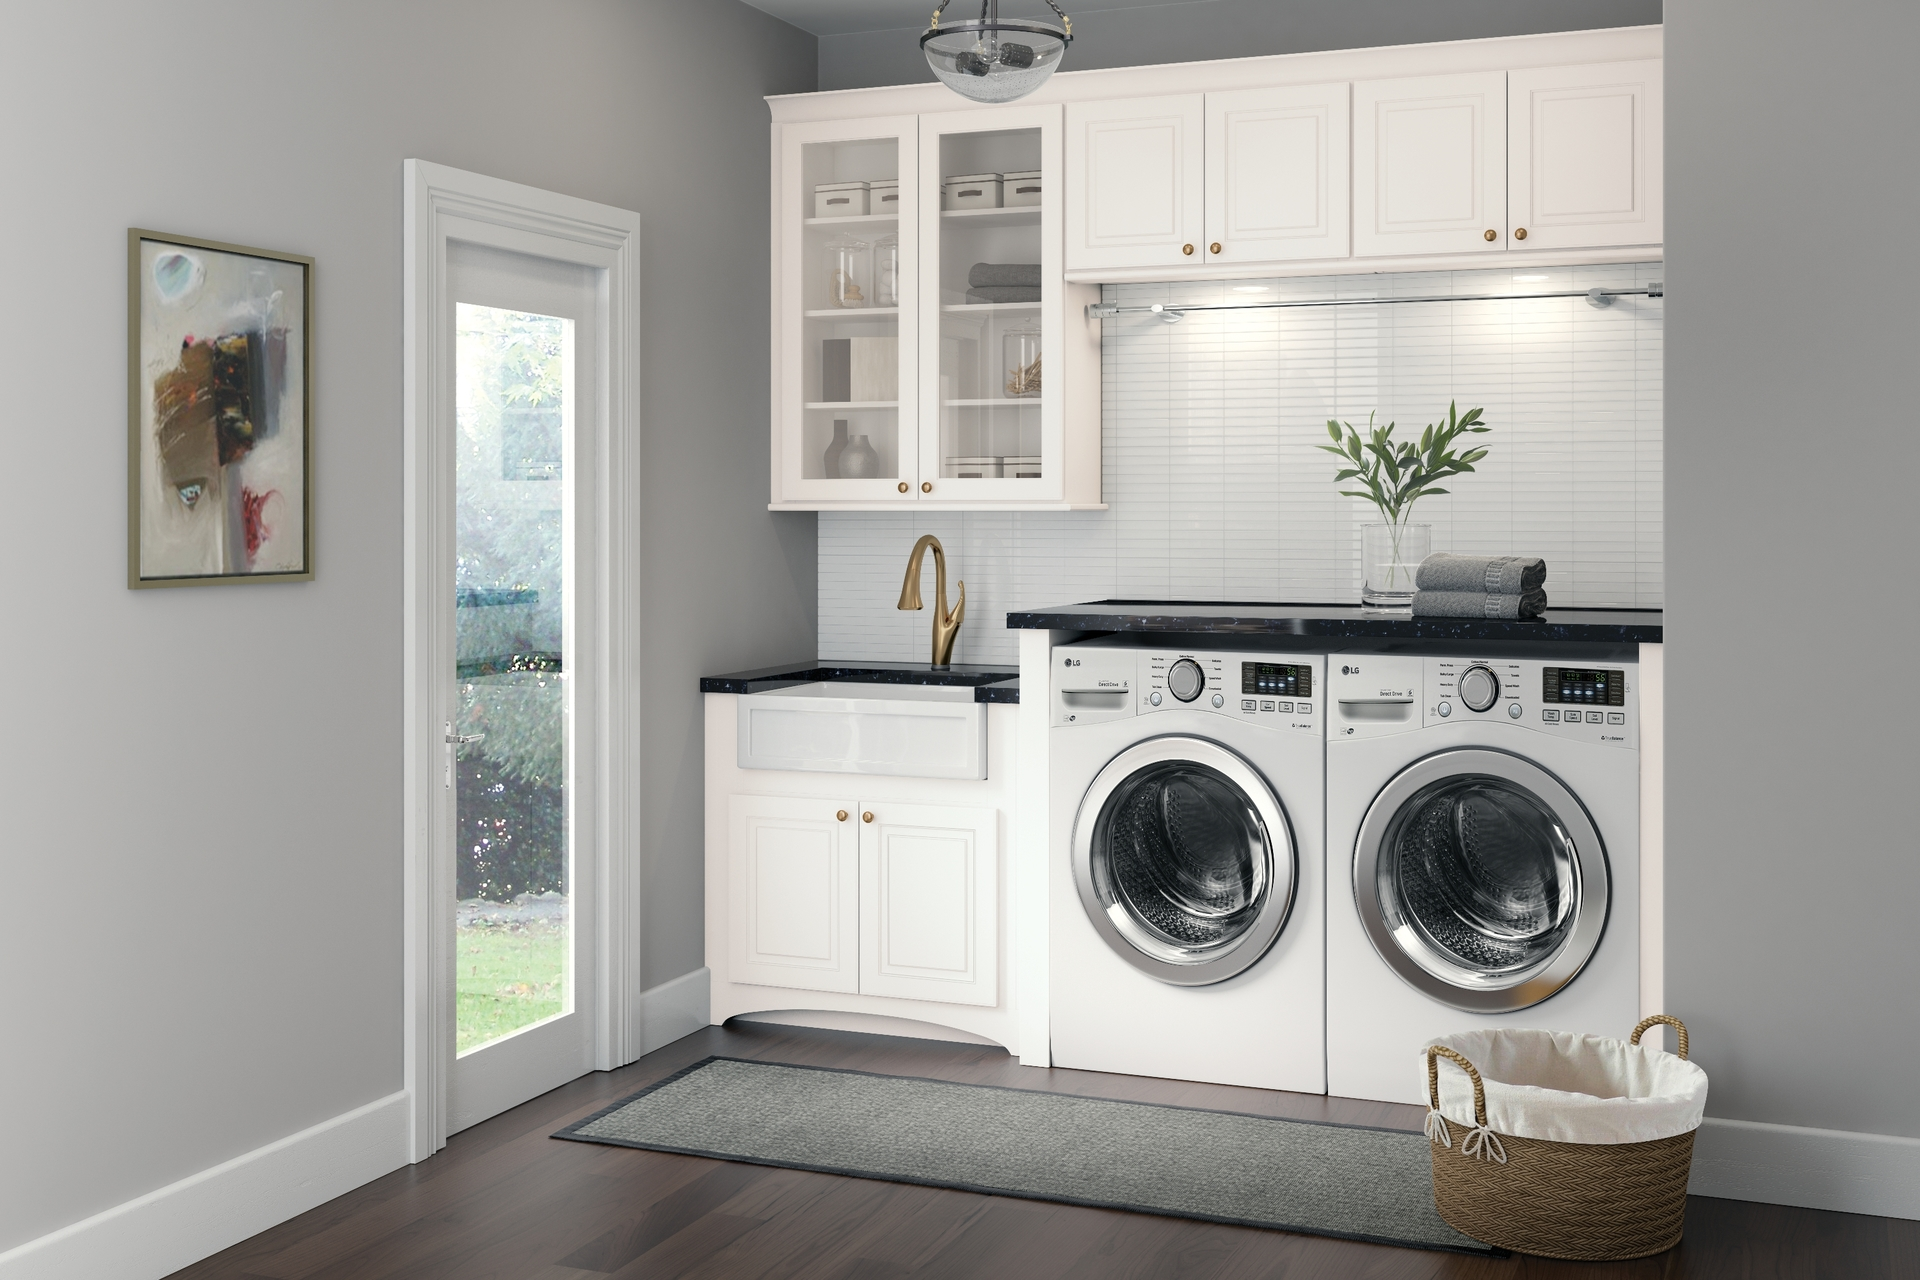 Fine Cardell Kitchen Cabinets Stubben In White Laundry Room Interior Design Ideas Gentotryabchikinfo